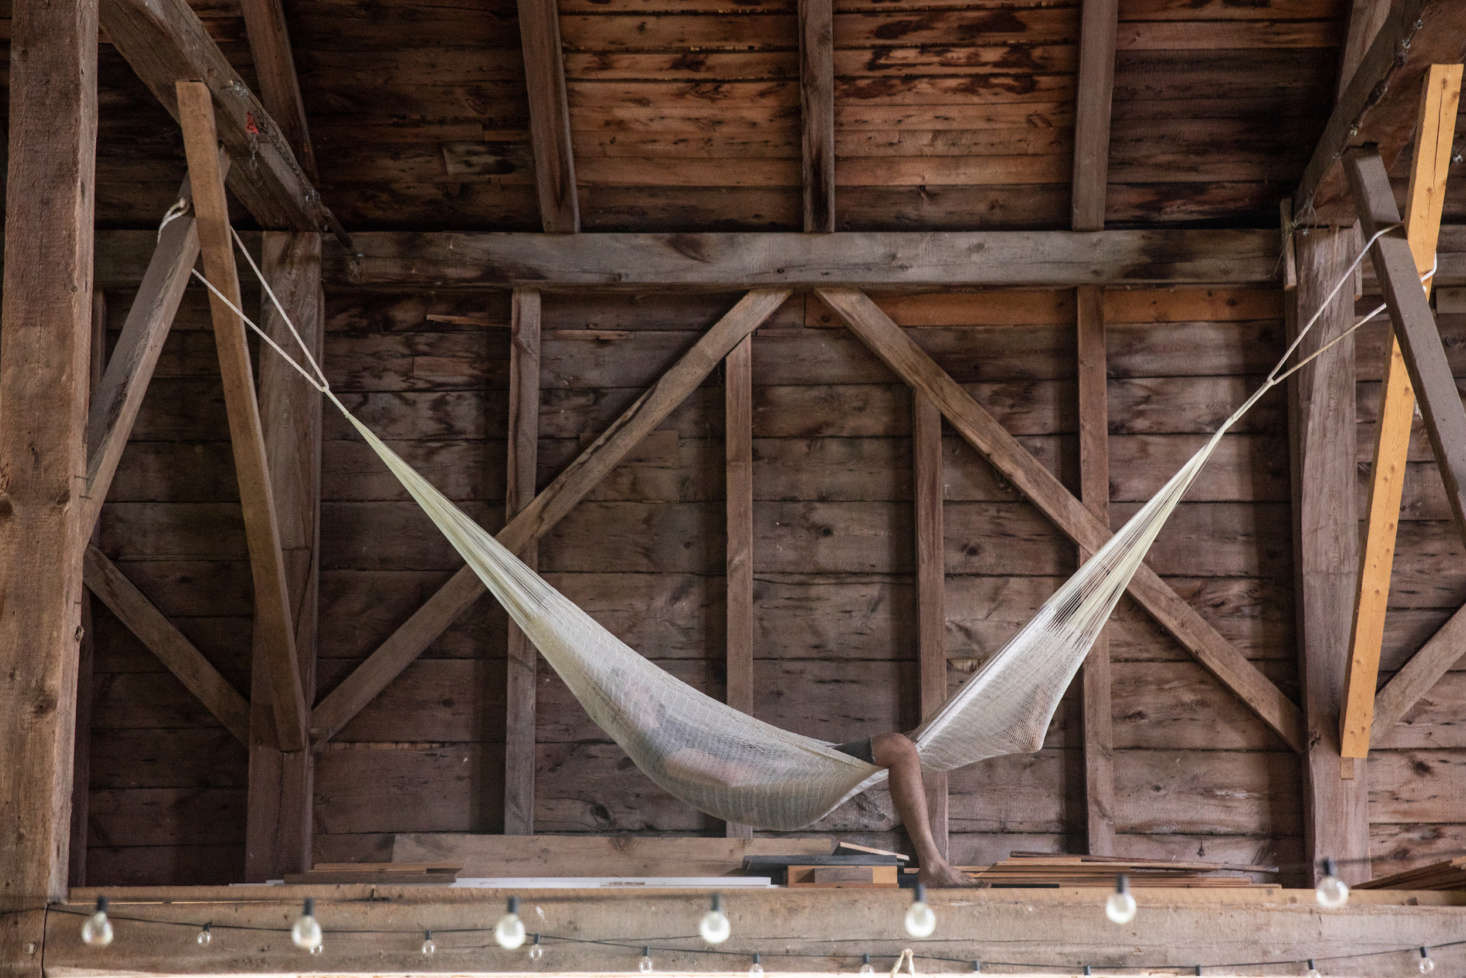 A hammock hung in the loft of the barn, for rare moments of rest.